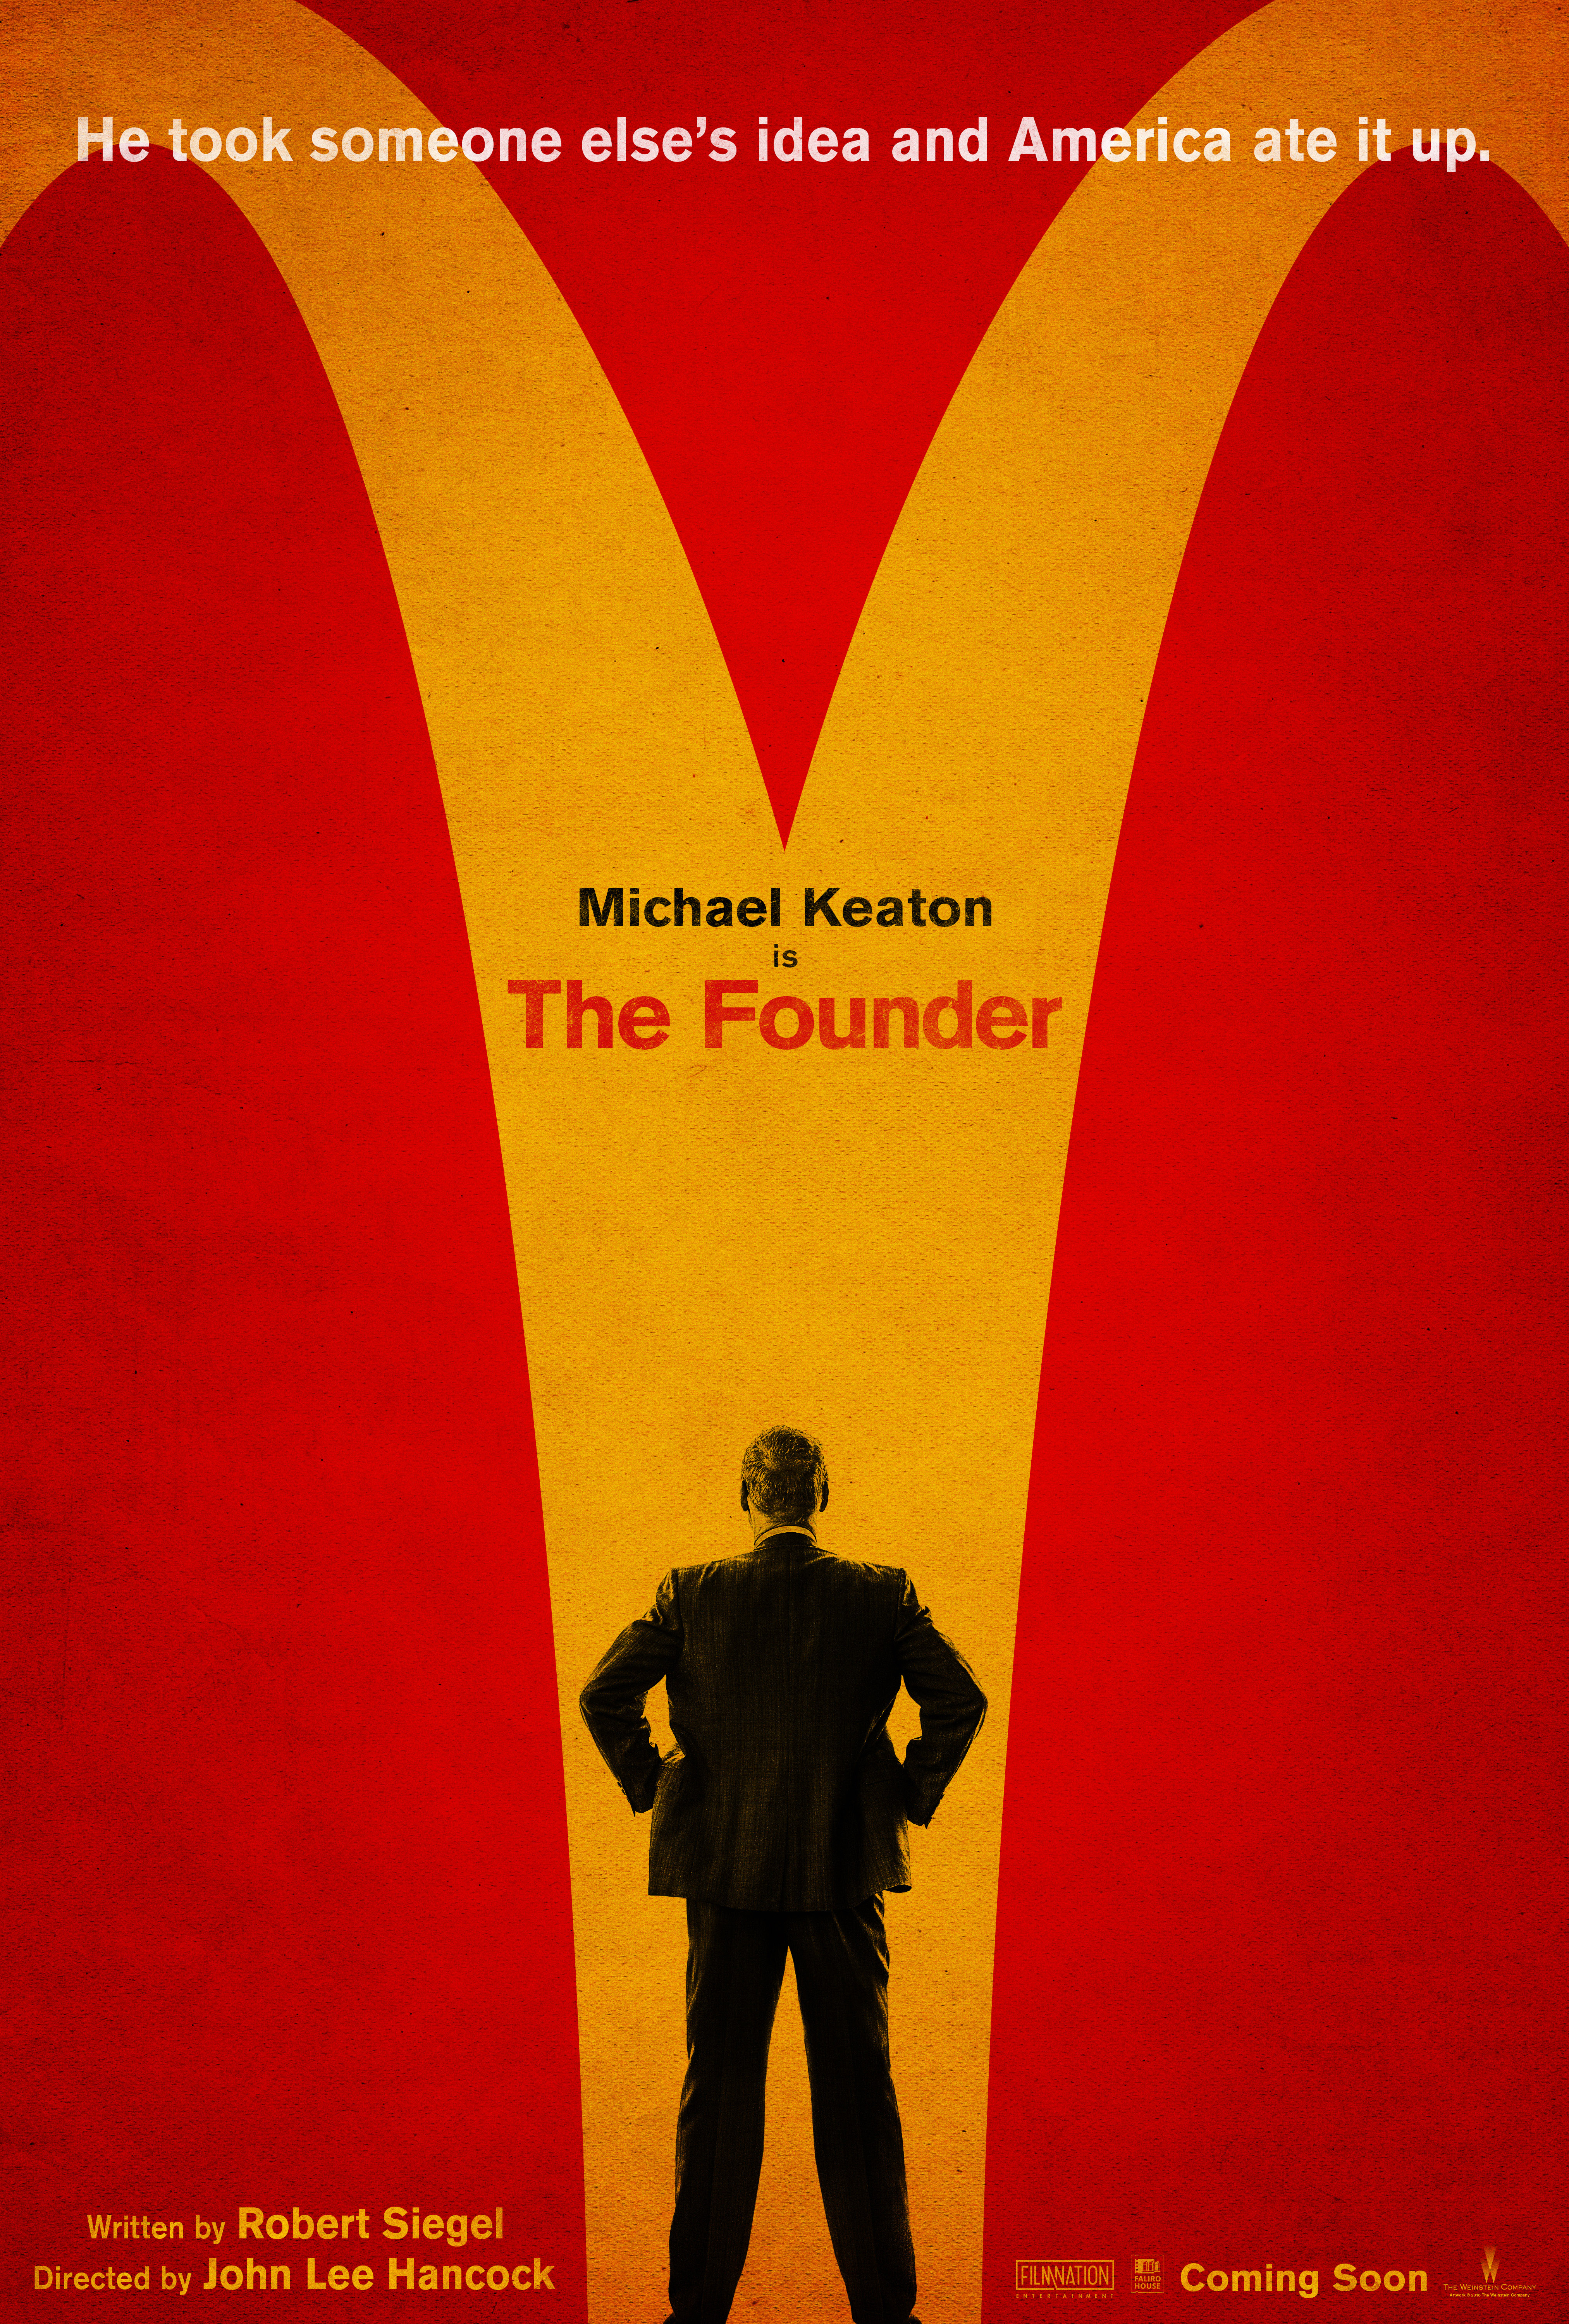 michael keaton is the founder in debut poster for anticipated